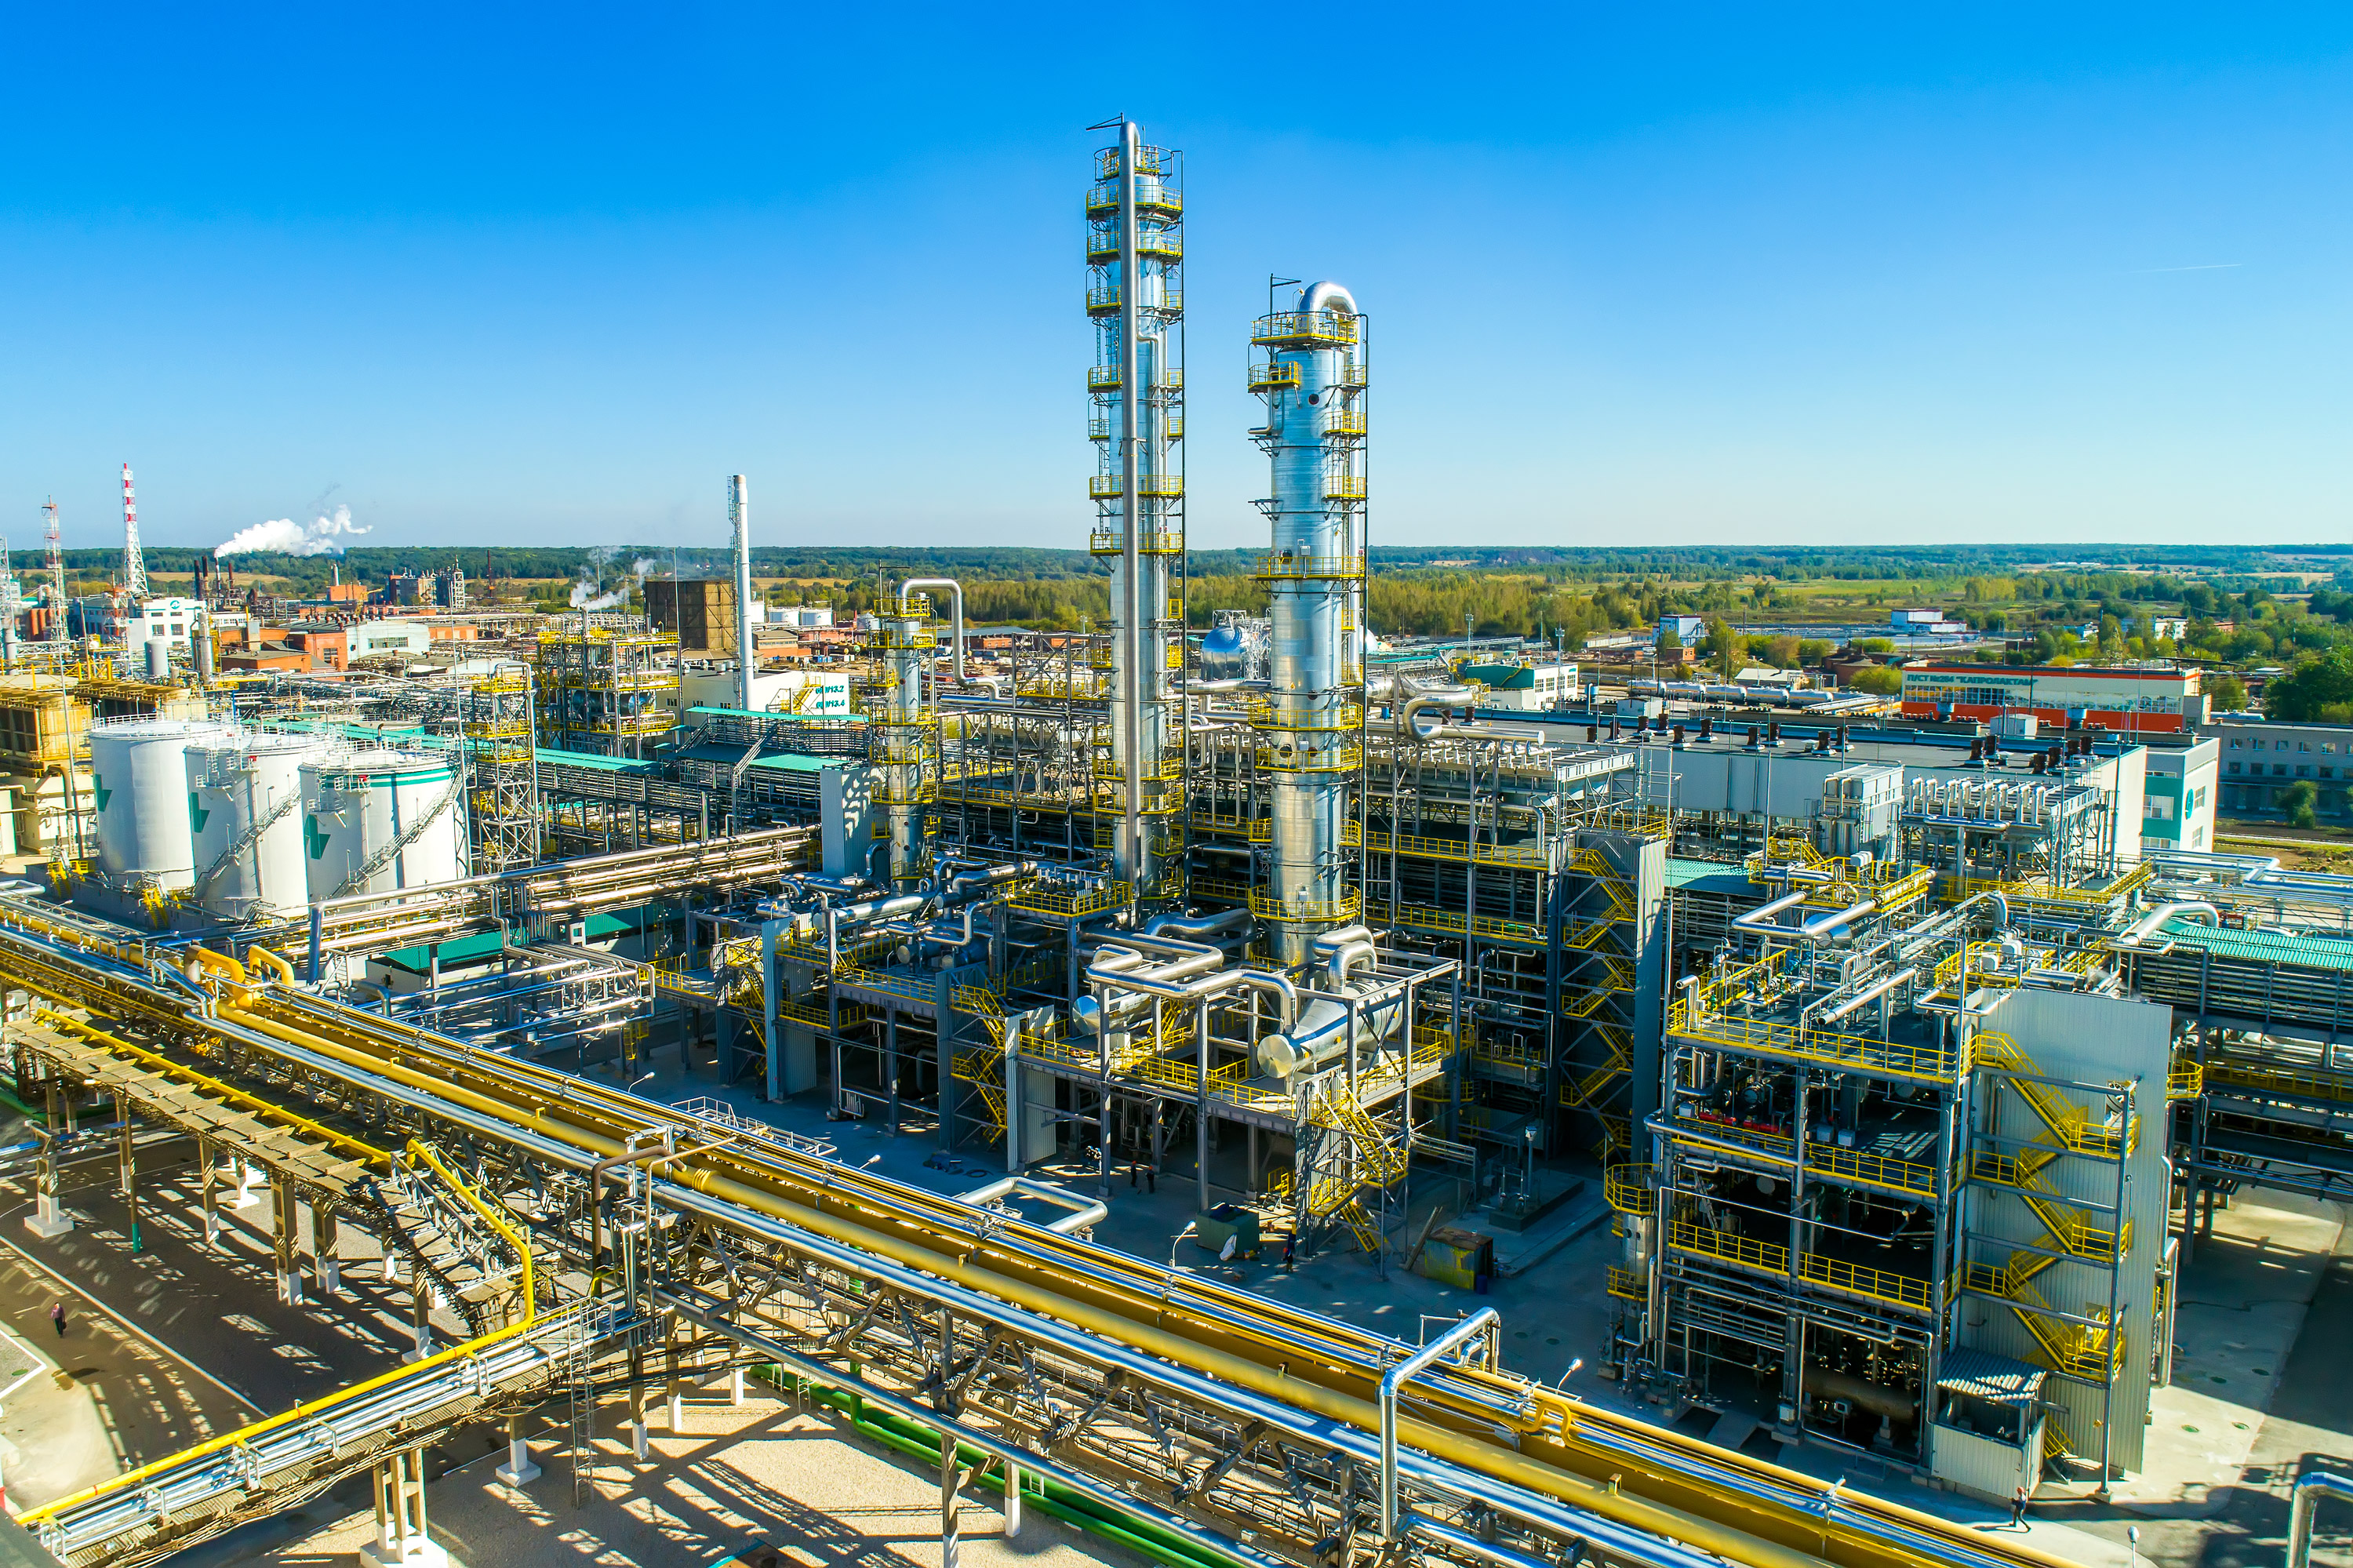 The IMAP Methanol+™ plant at UCC Shchekinoazot's site in Tula, Russia, is the first greenfield plant of its kind